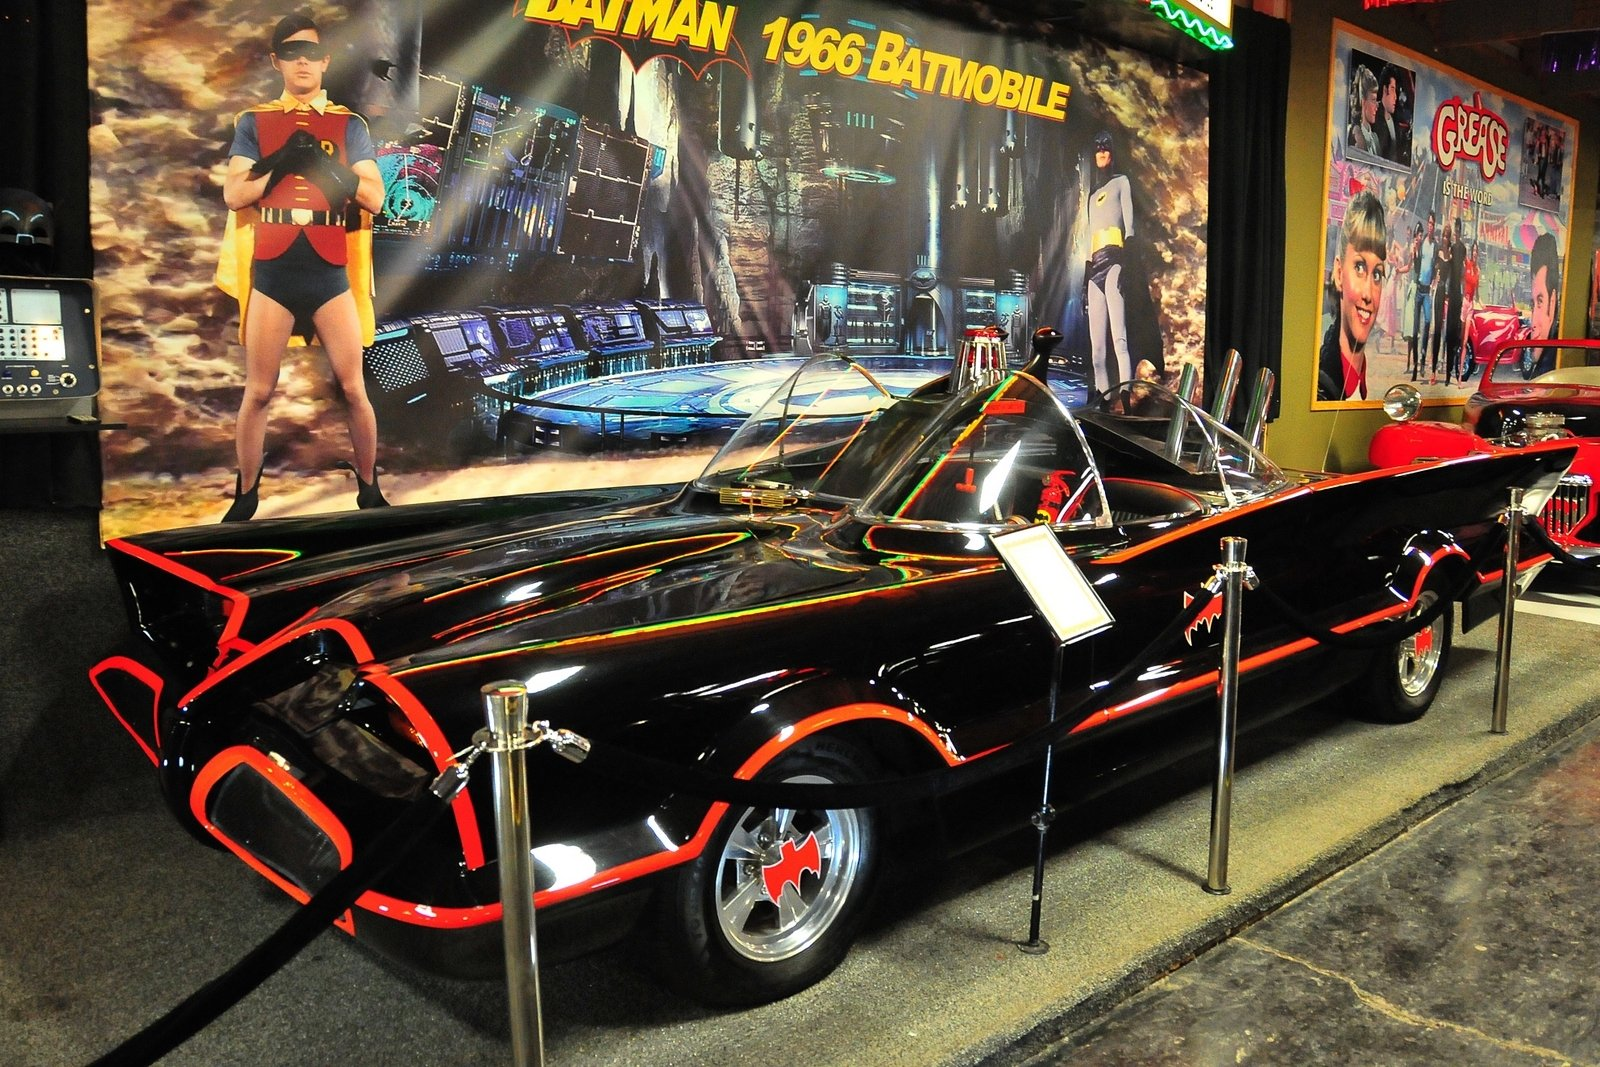 rent the 1966 Batmobile